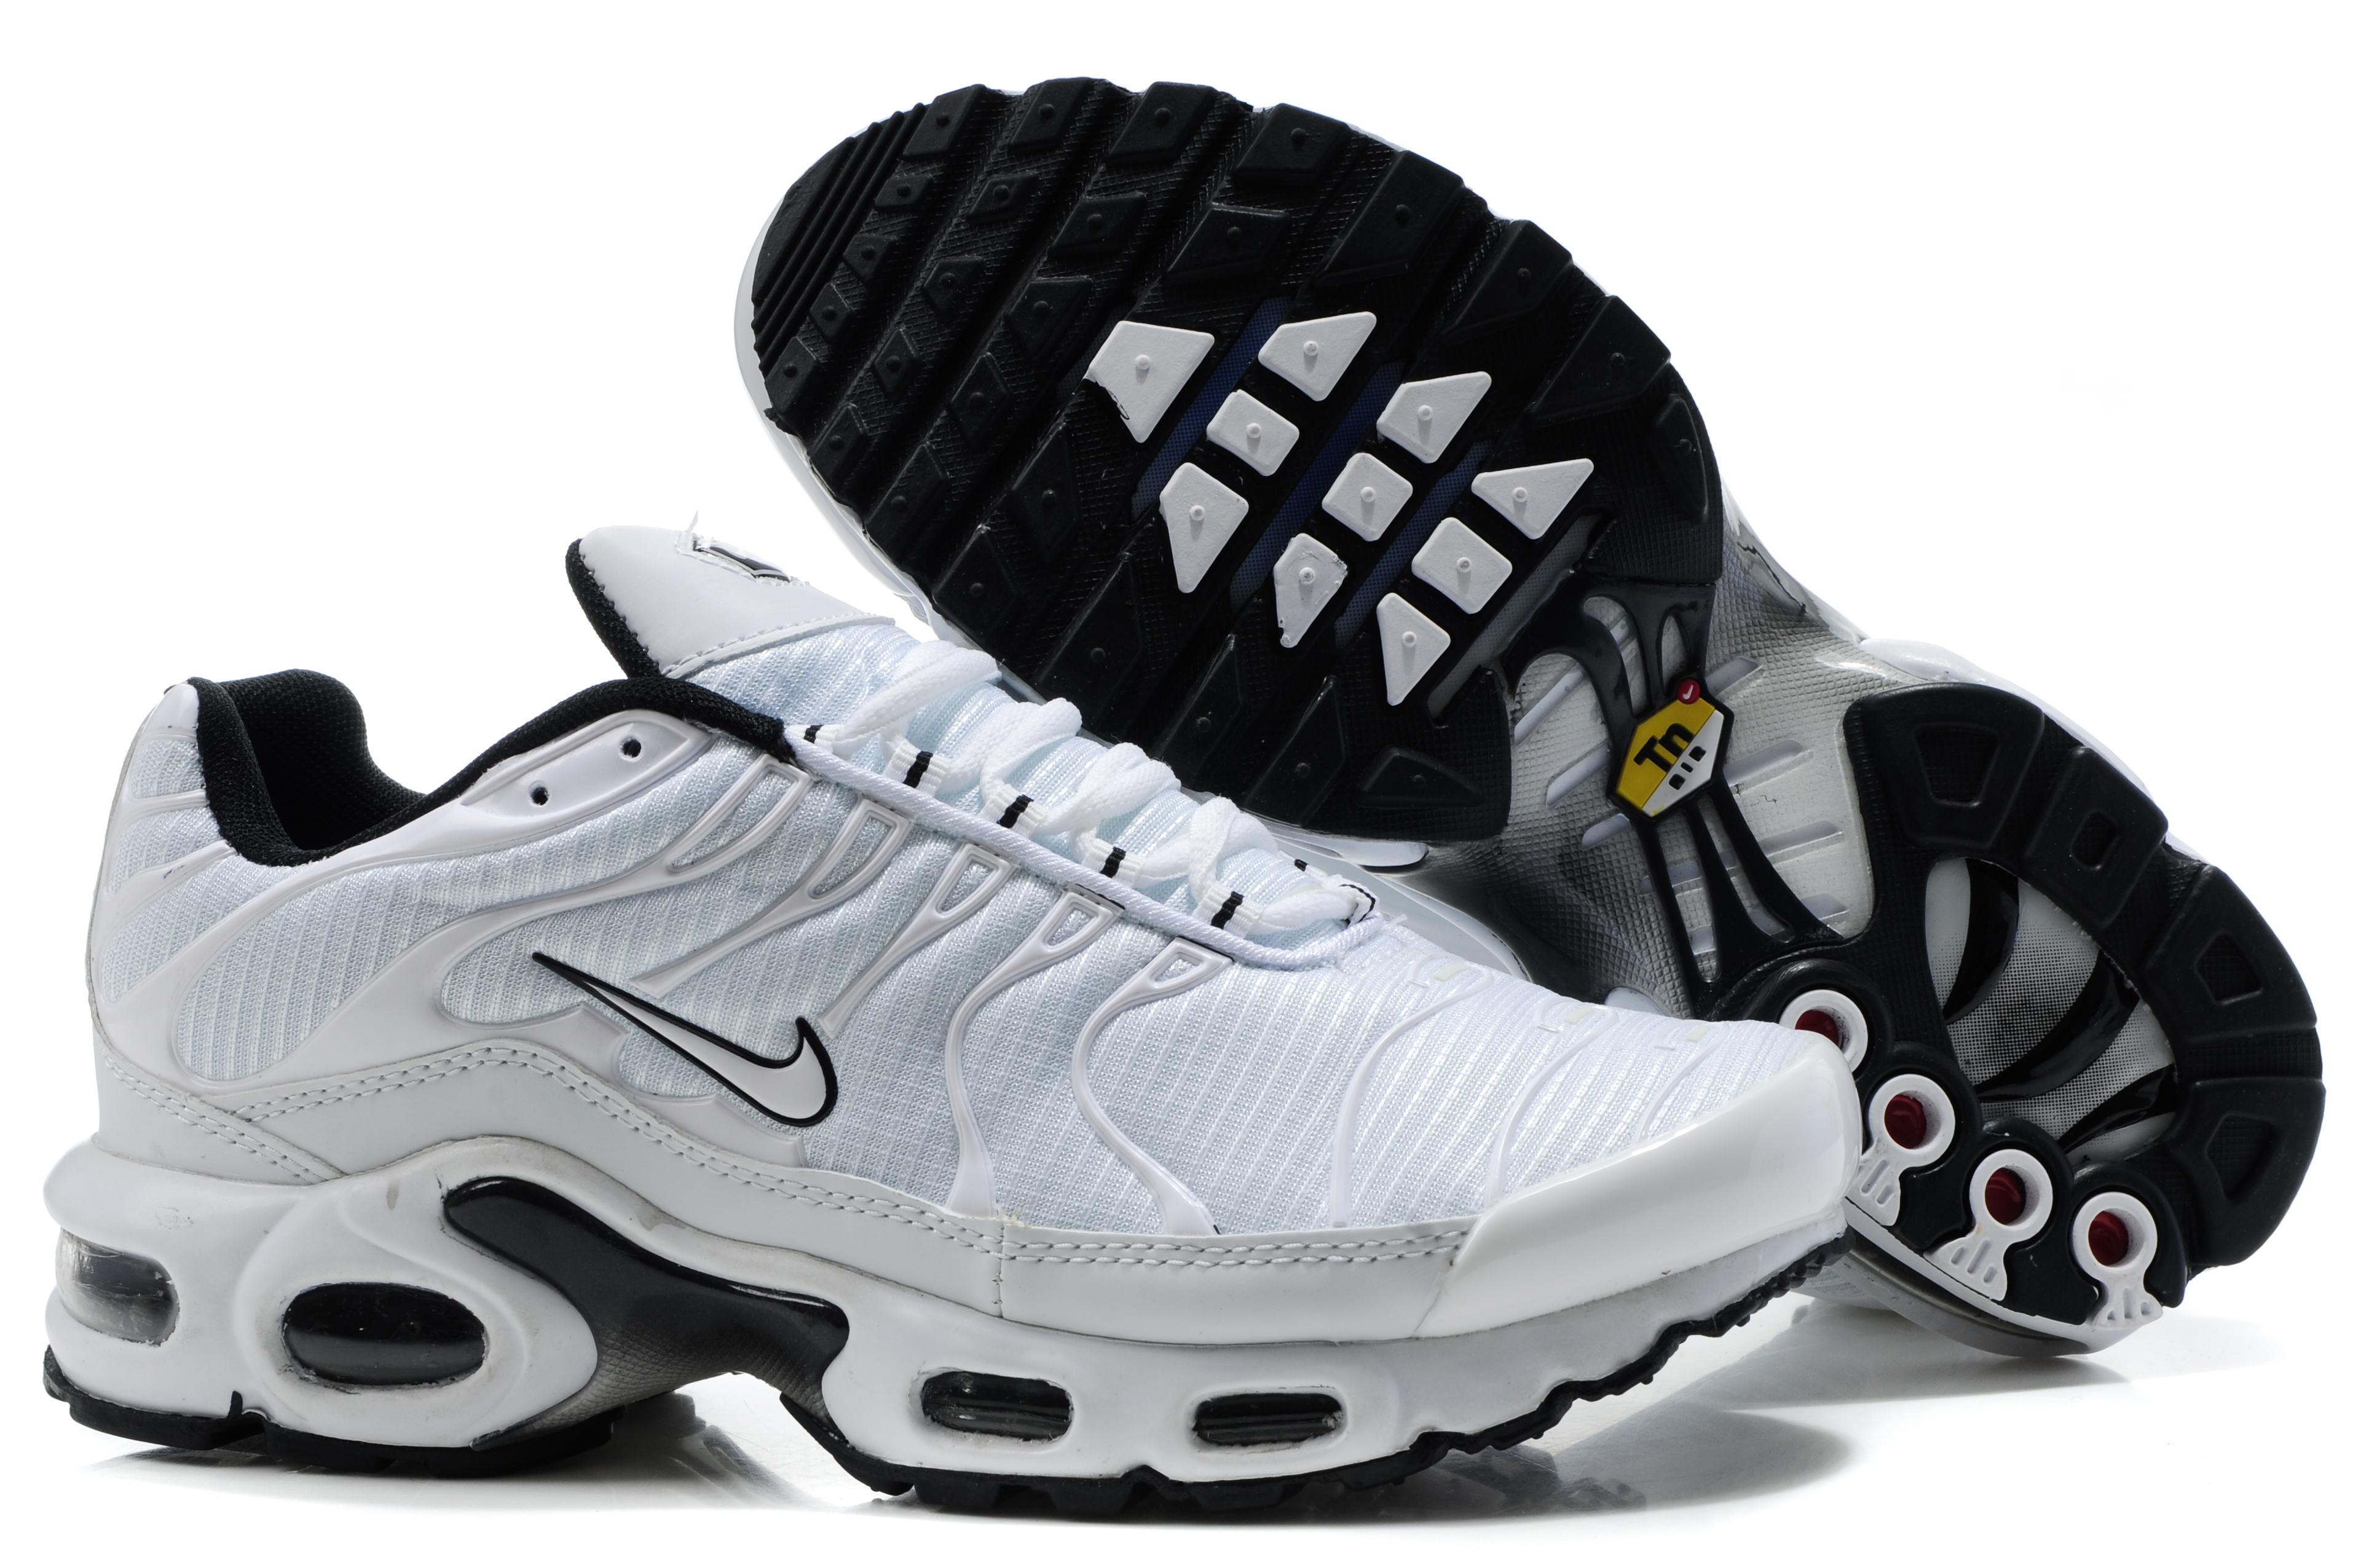 online shop newest collection get cheap nike tn requin chaussure,achat / vente chaussures baskets nike tn ...